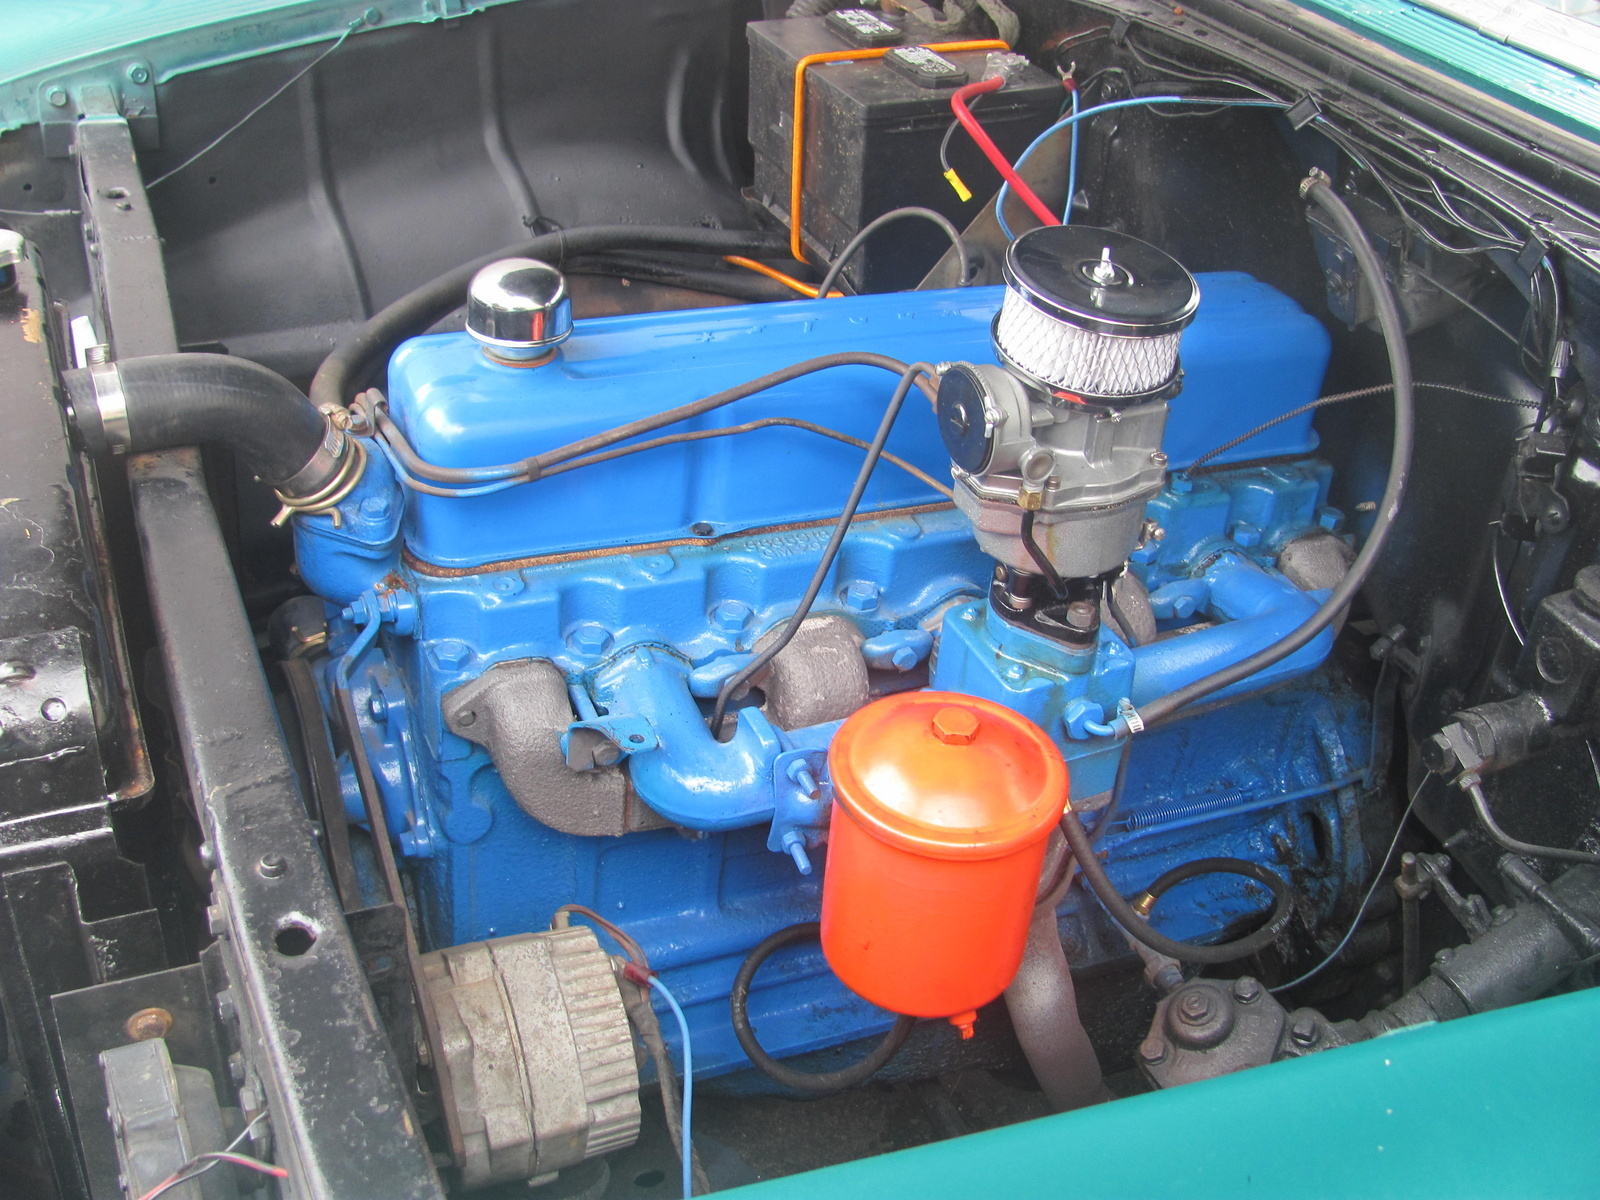 1956 bel air for sale submited images -  And Doesn T Shift Smooth At All I Have The 235 6 Cylinder Engine Can Anyone Recommend A Rebuilder Or Where I Can Buy A Re Built Tranny Thanks